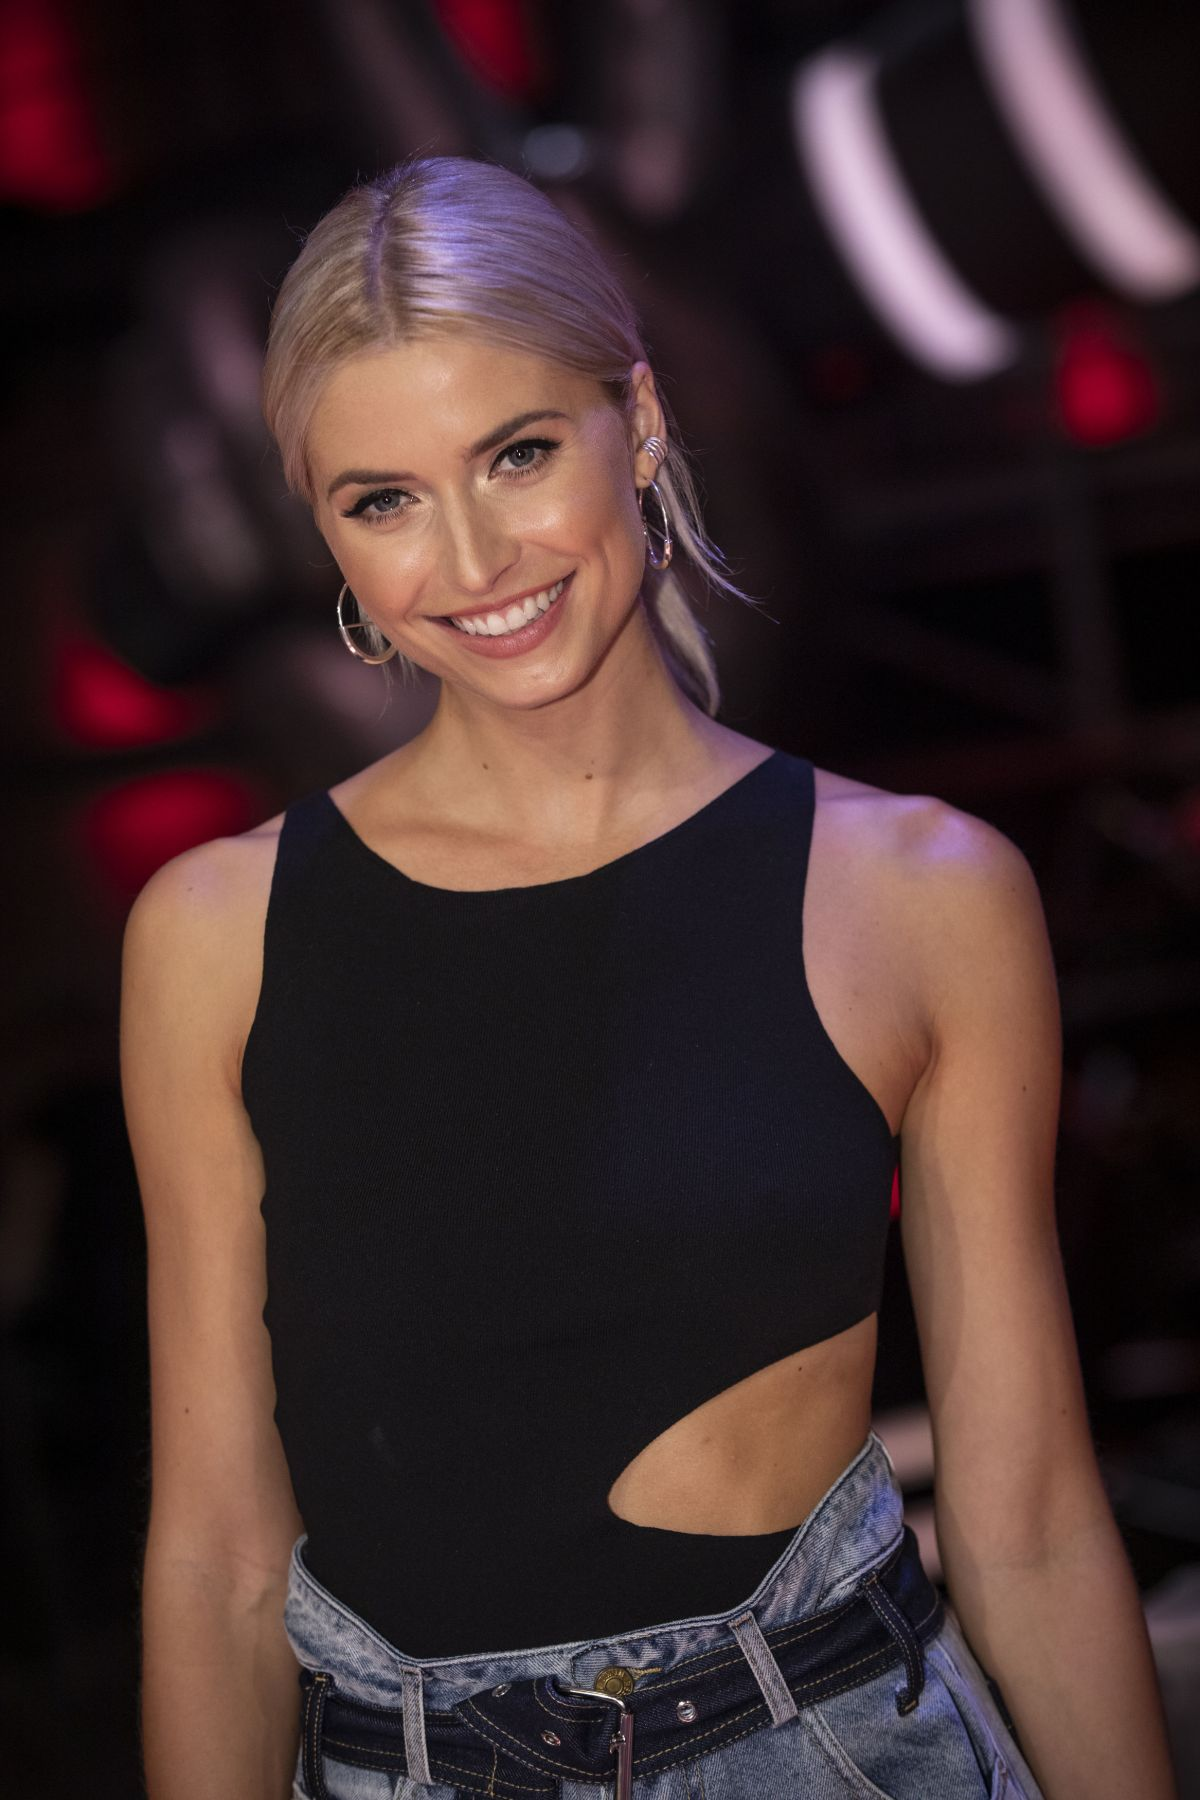 LENA GERCKE - The Voice of Germany Promos 08/05/2019